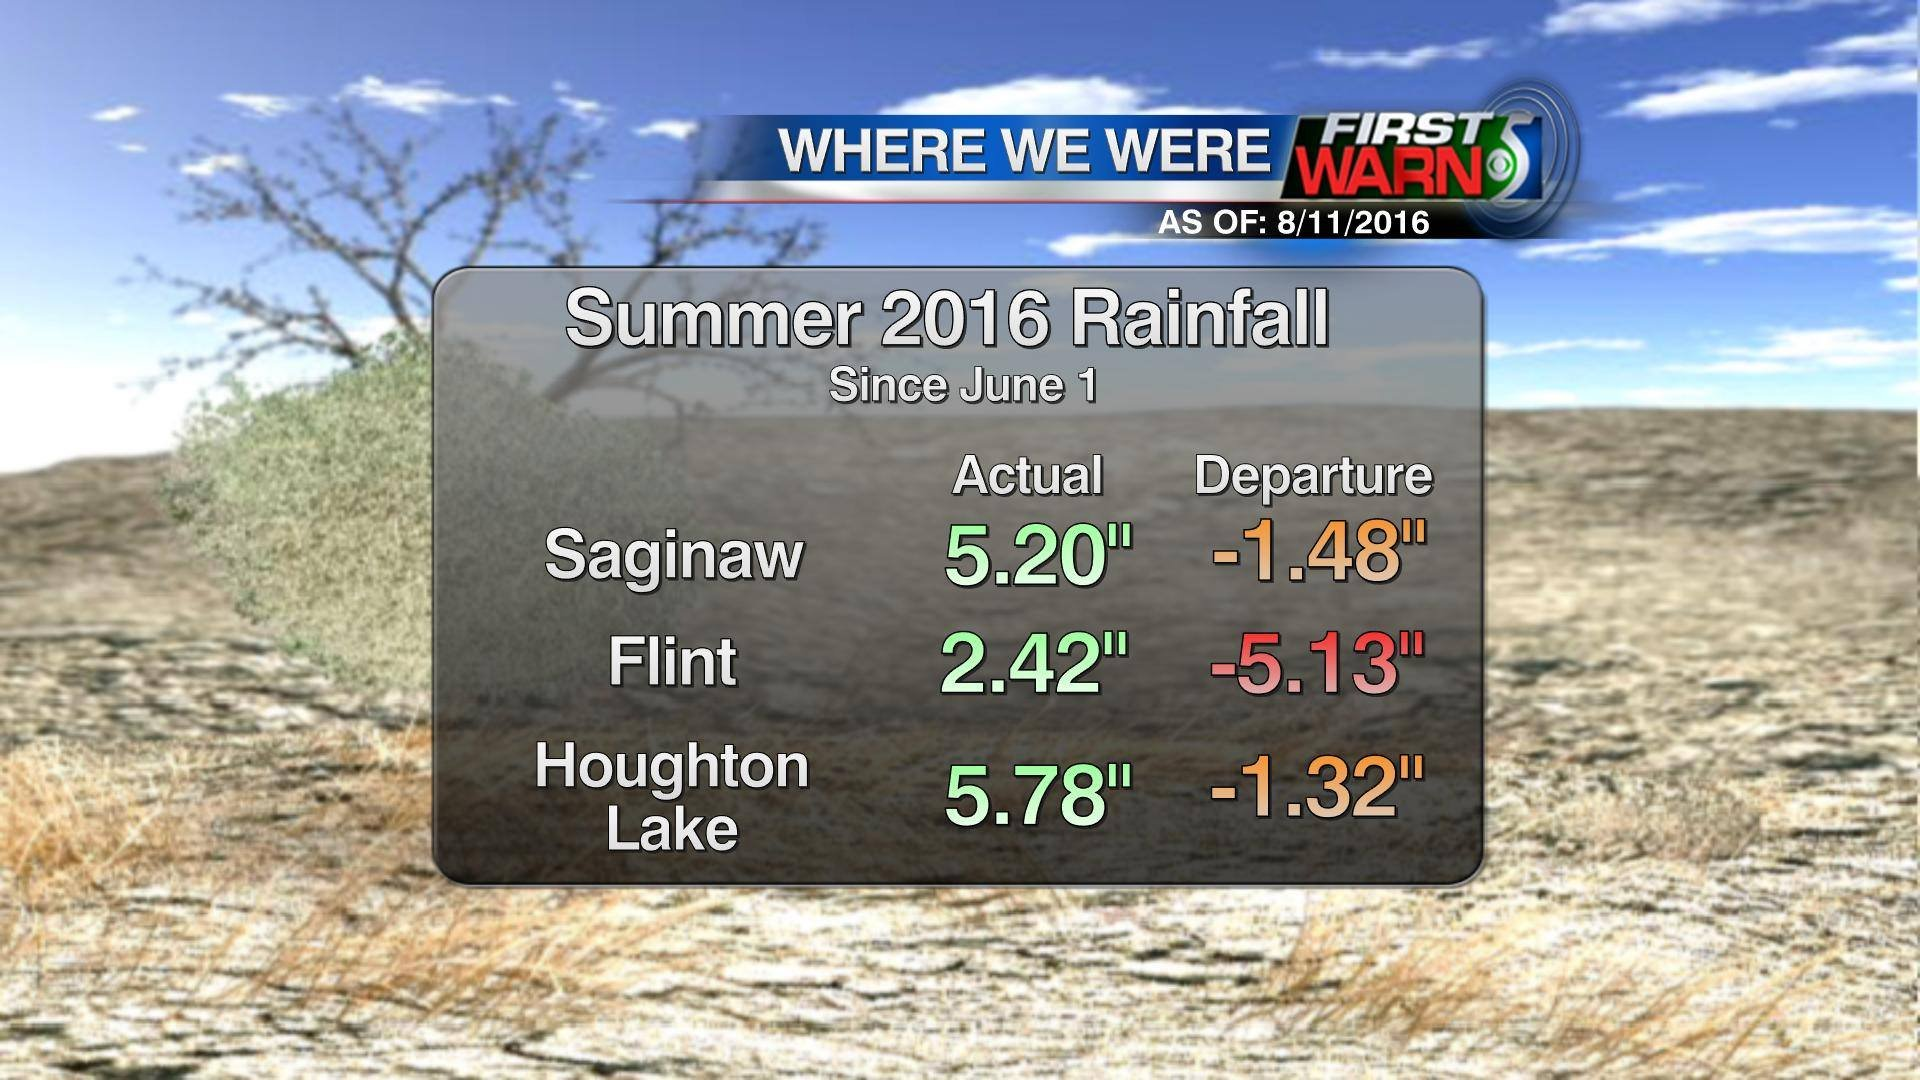 Previous summer rainfall totals from August 11, 2016.